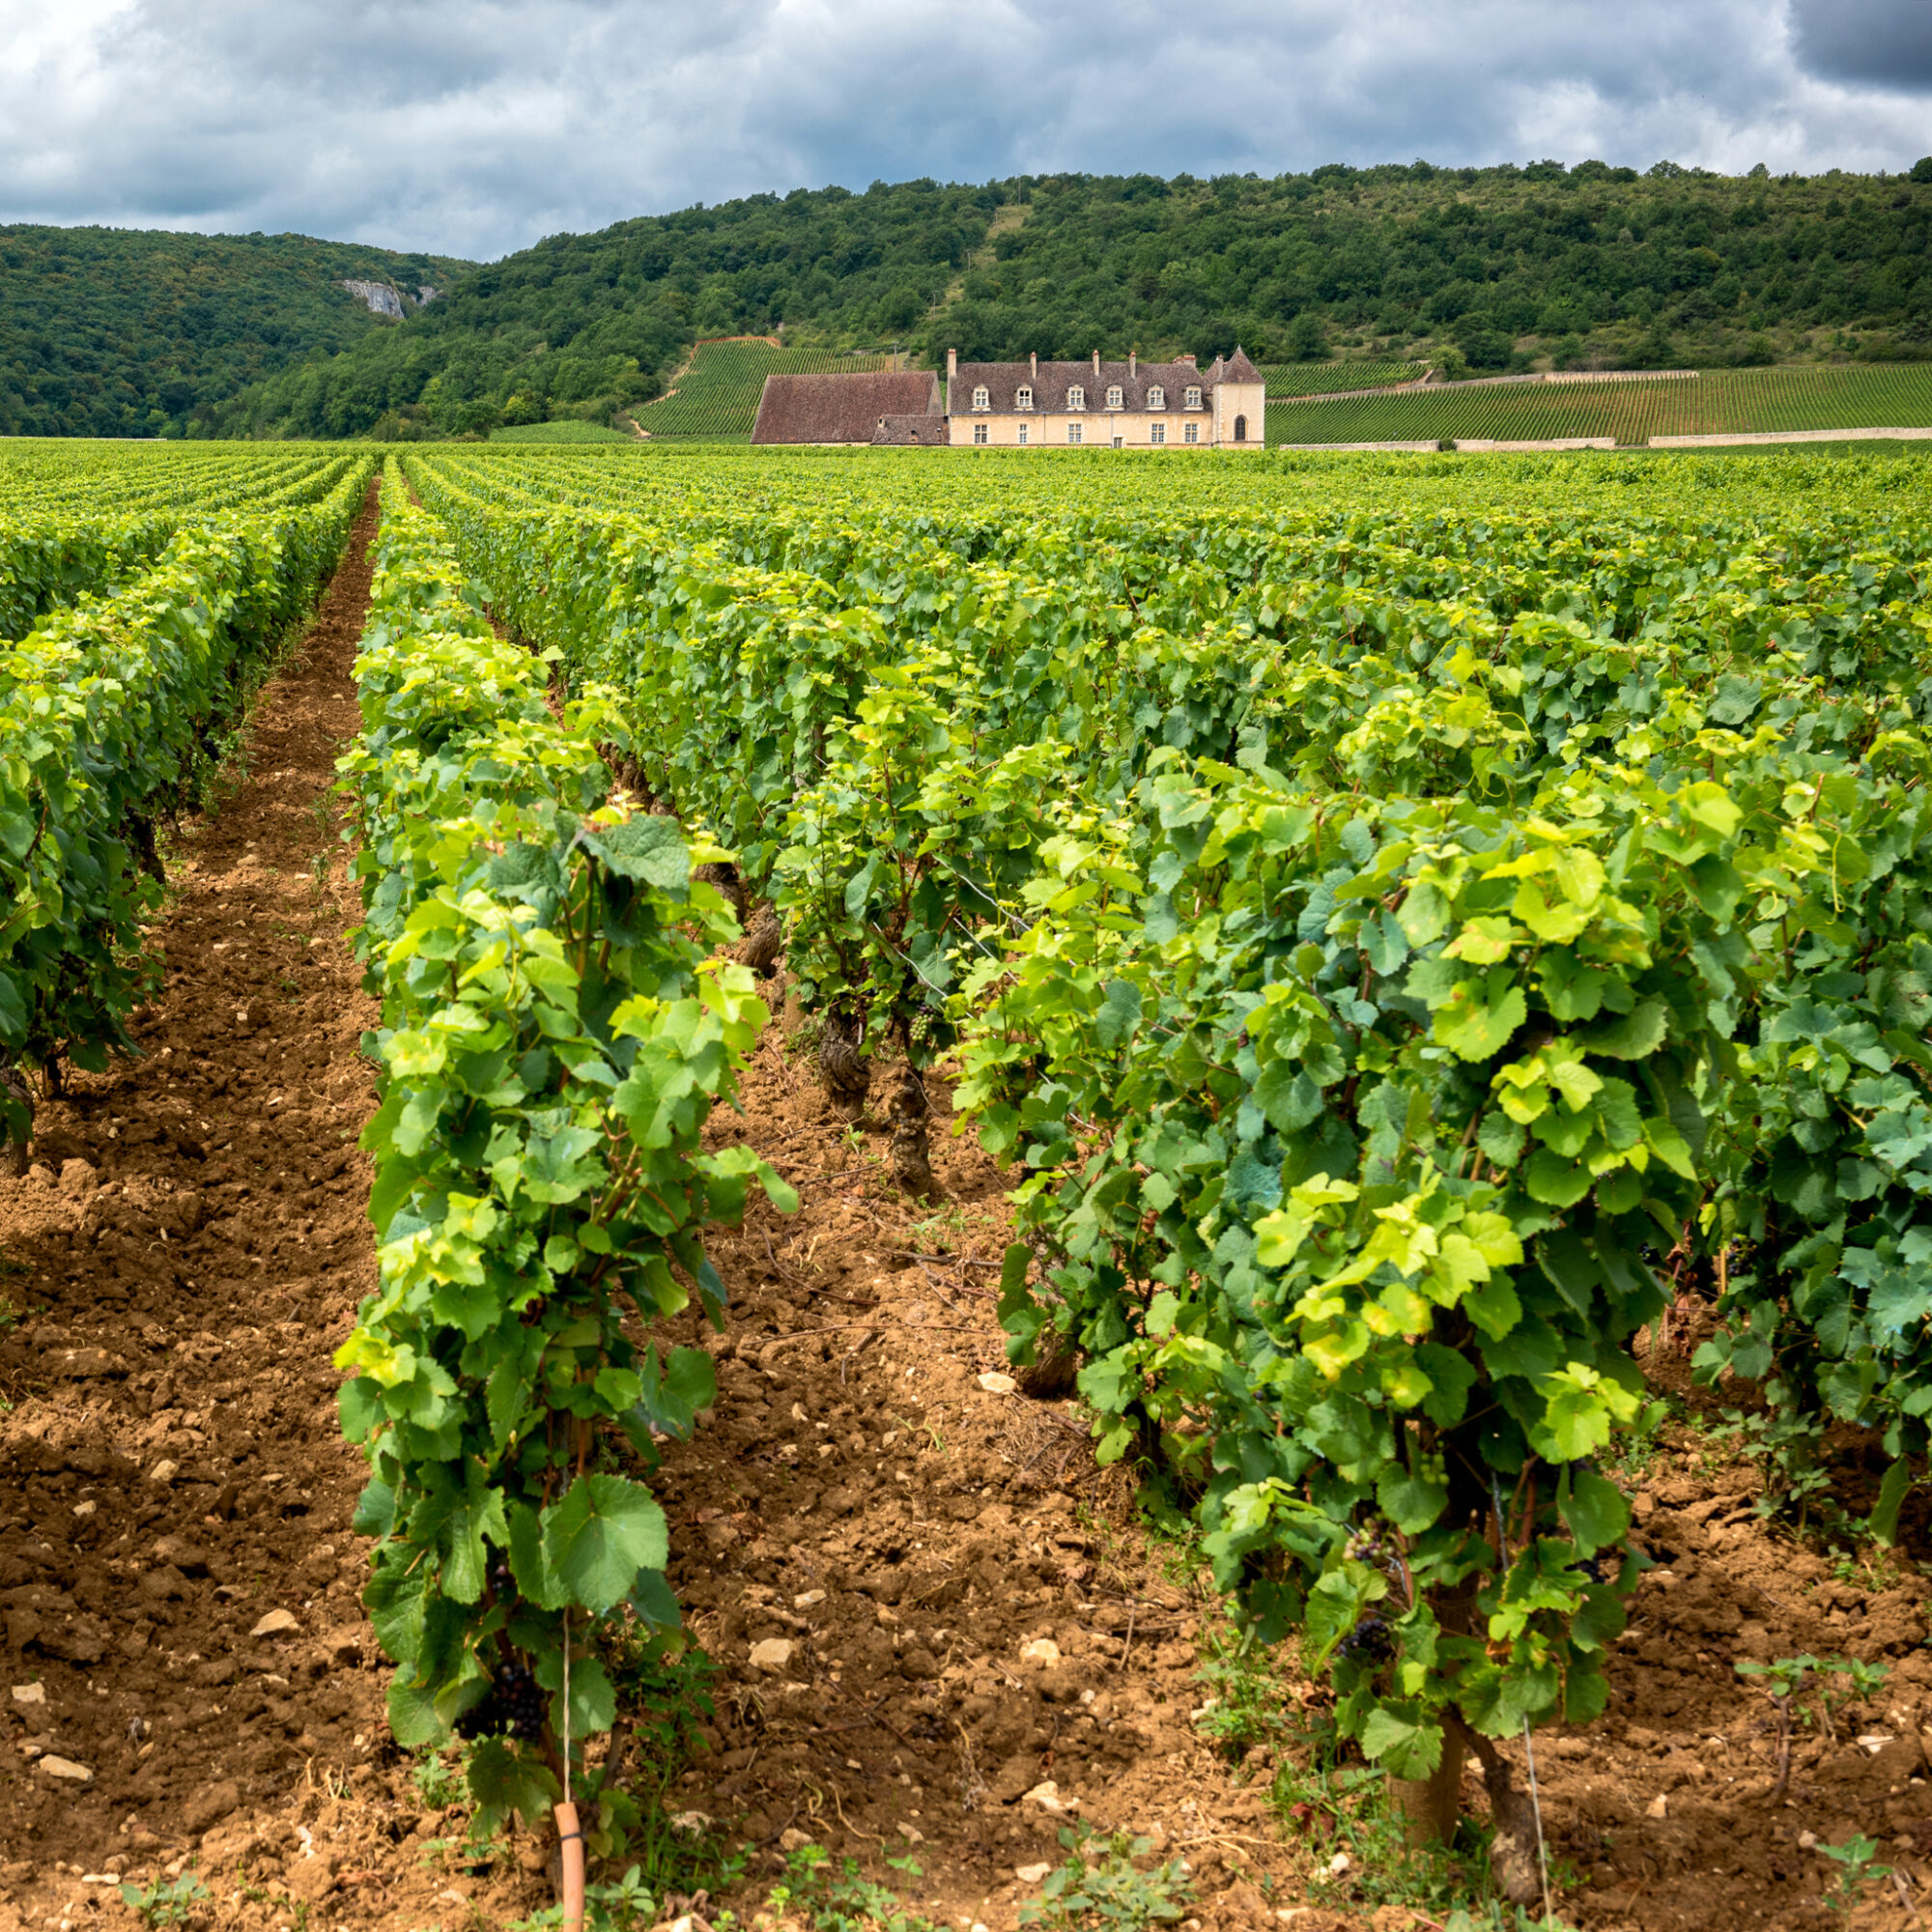 Vineyard views in Burgundy, France.